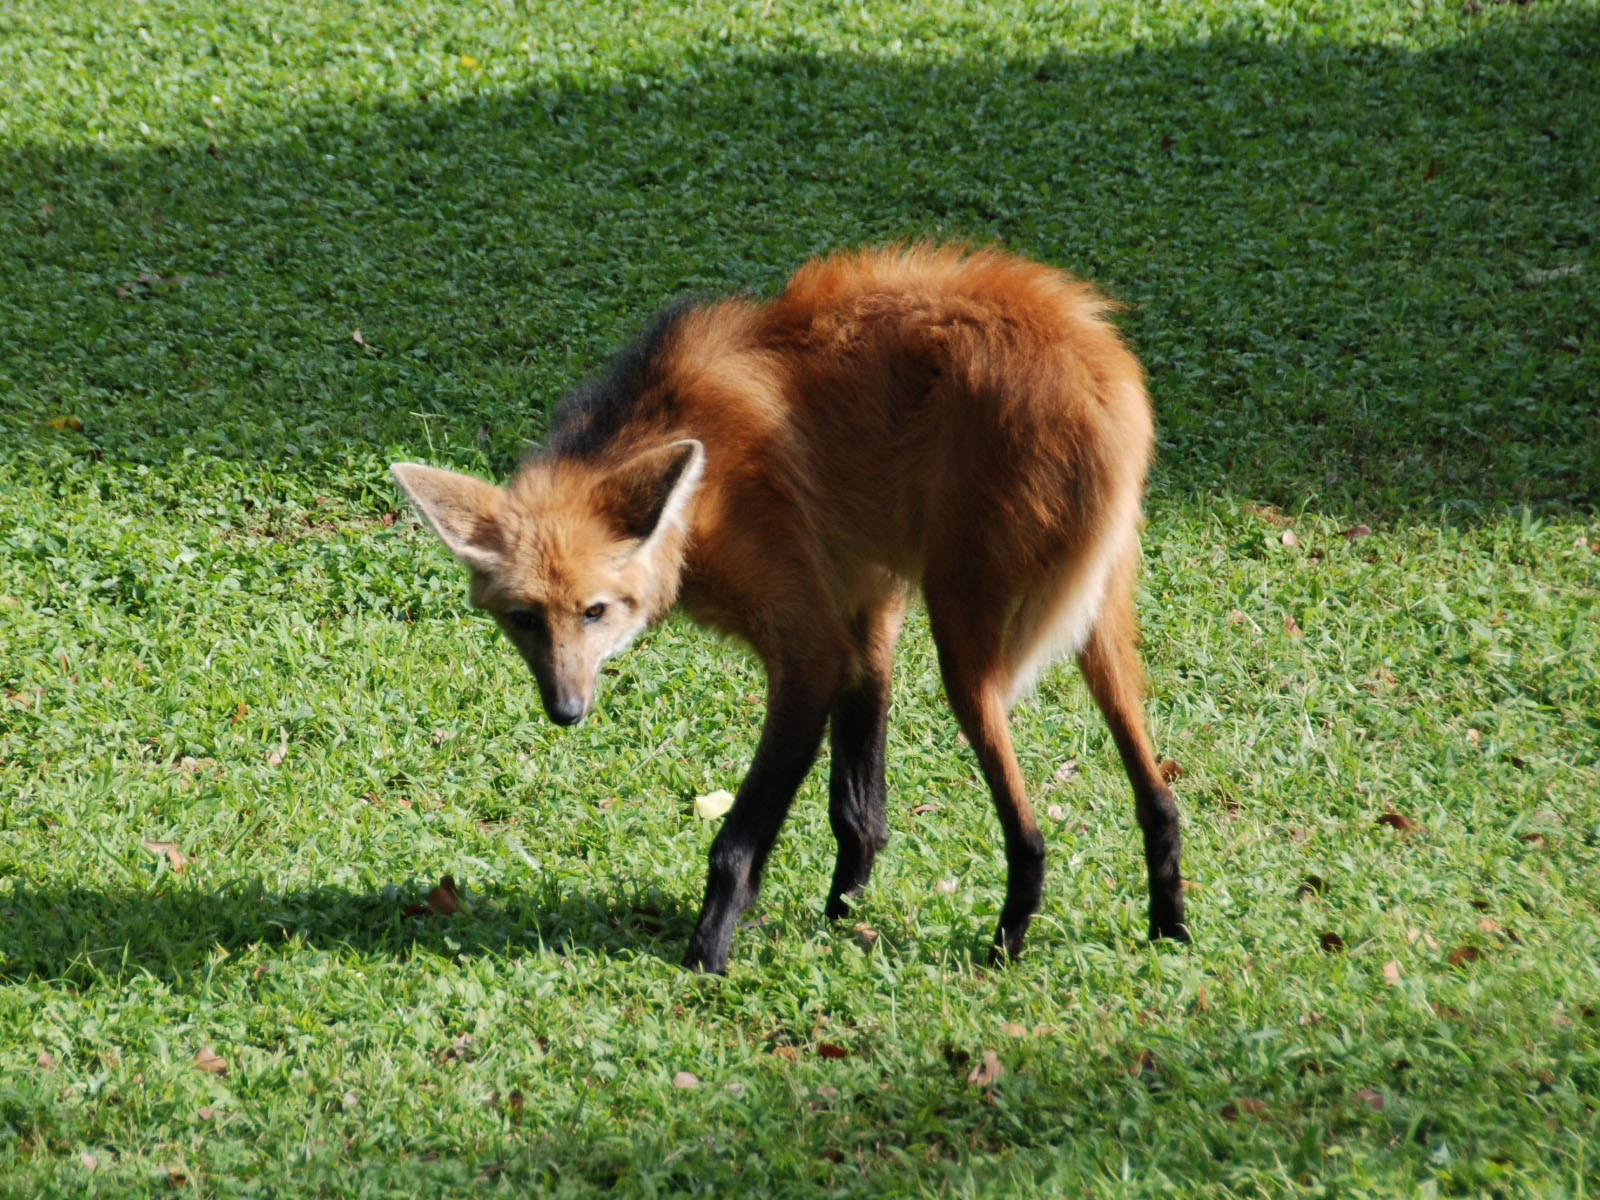 maned wolf Cute maned wolf coloring page from wolf category select from 30094 printable crafts of cartoons, nature, animals, bible and many more.